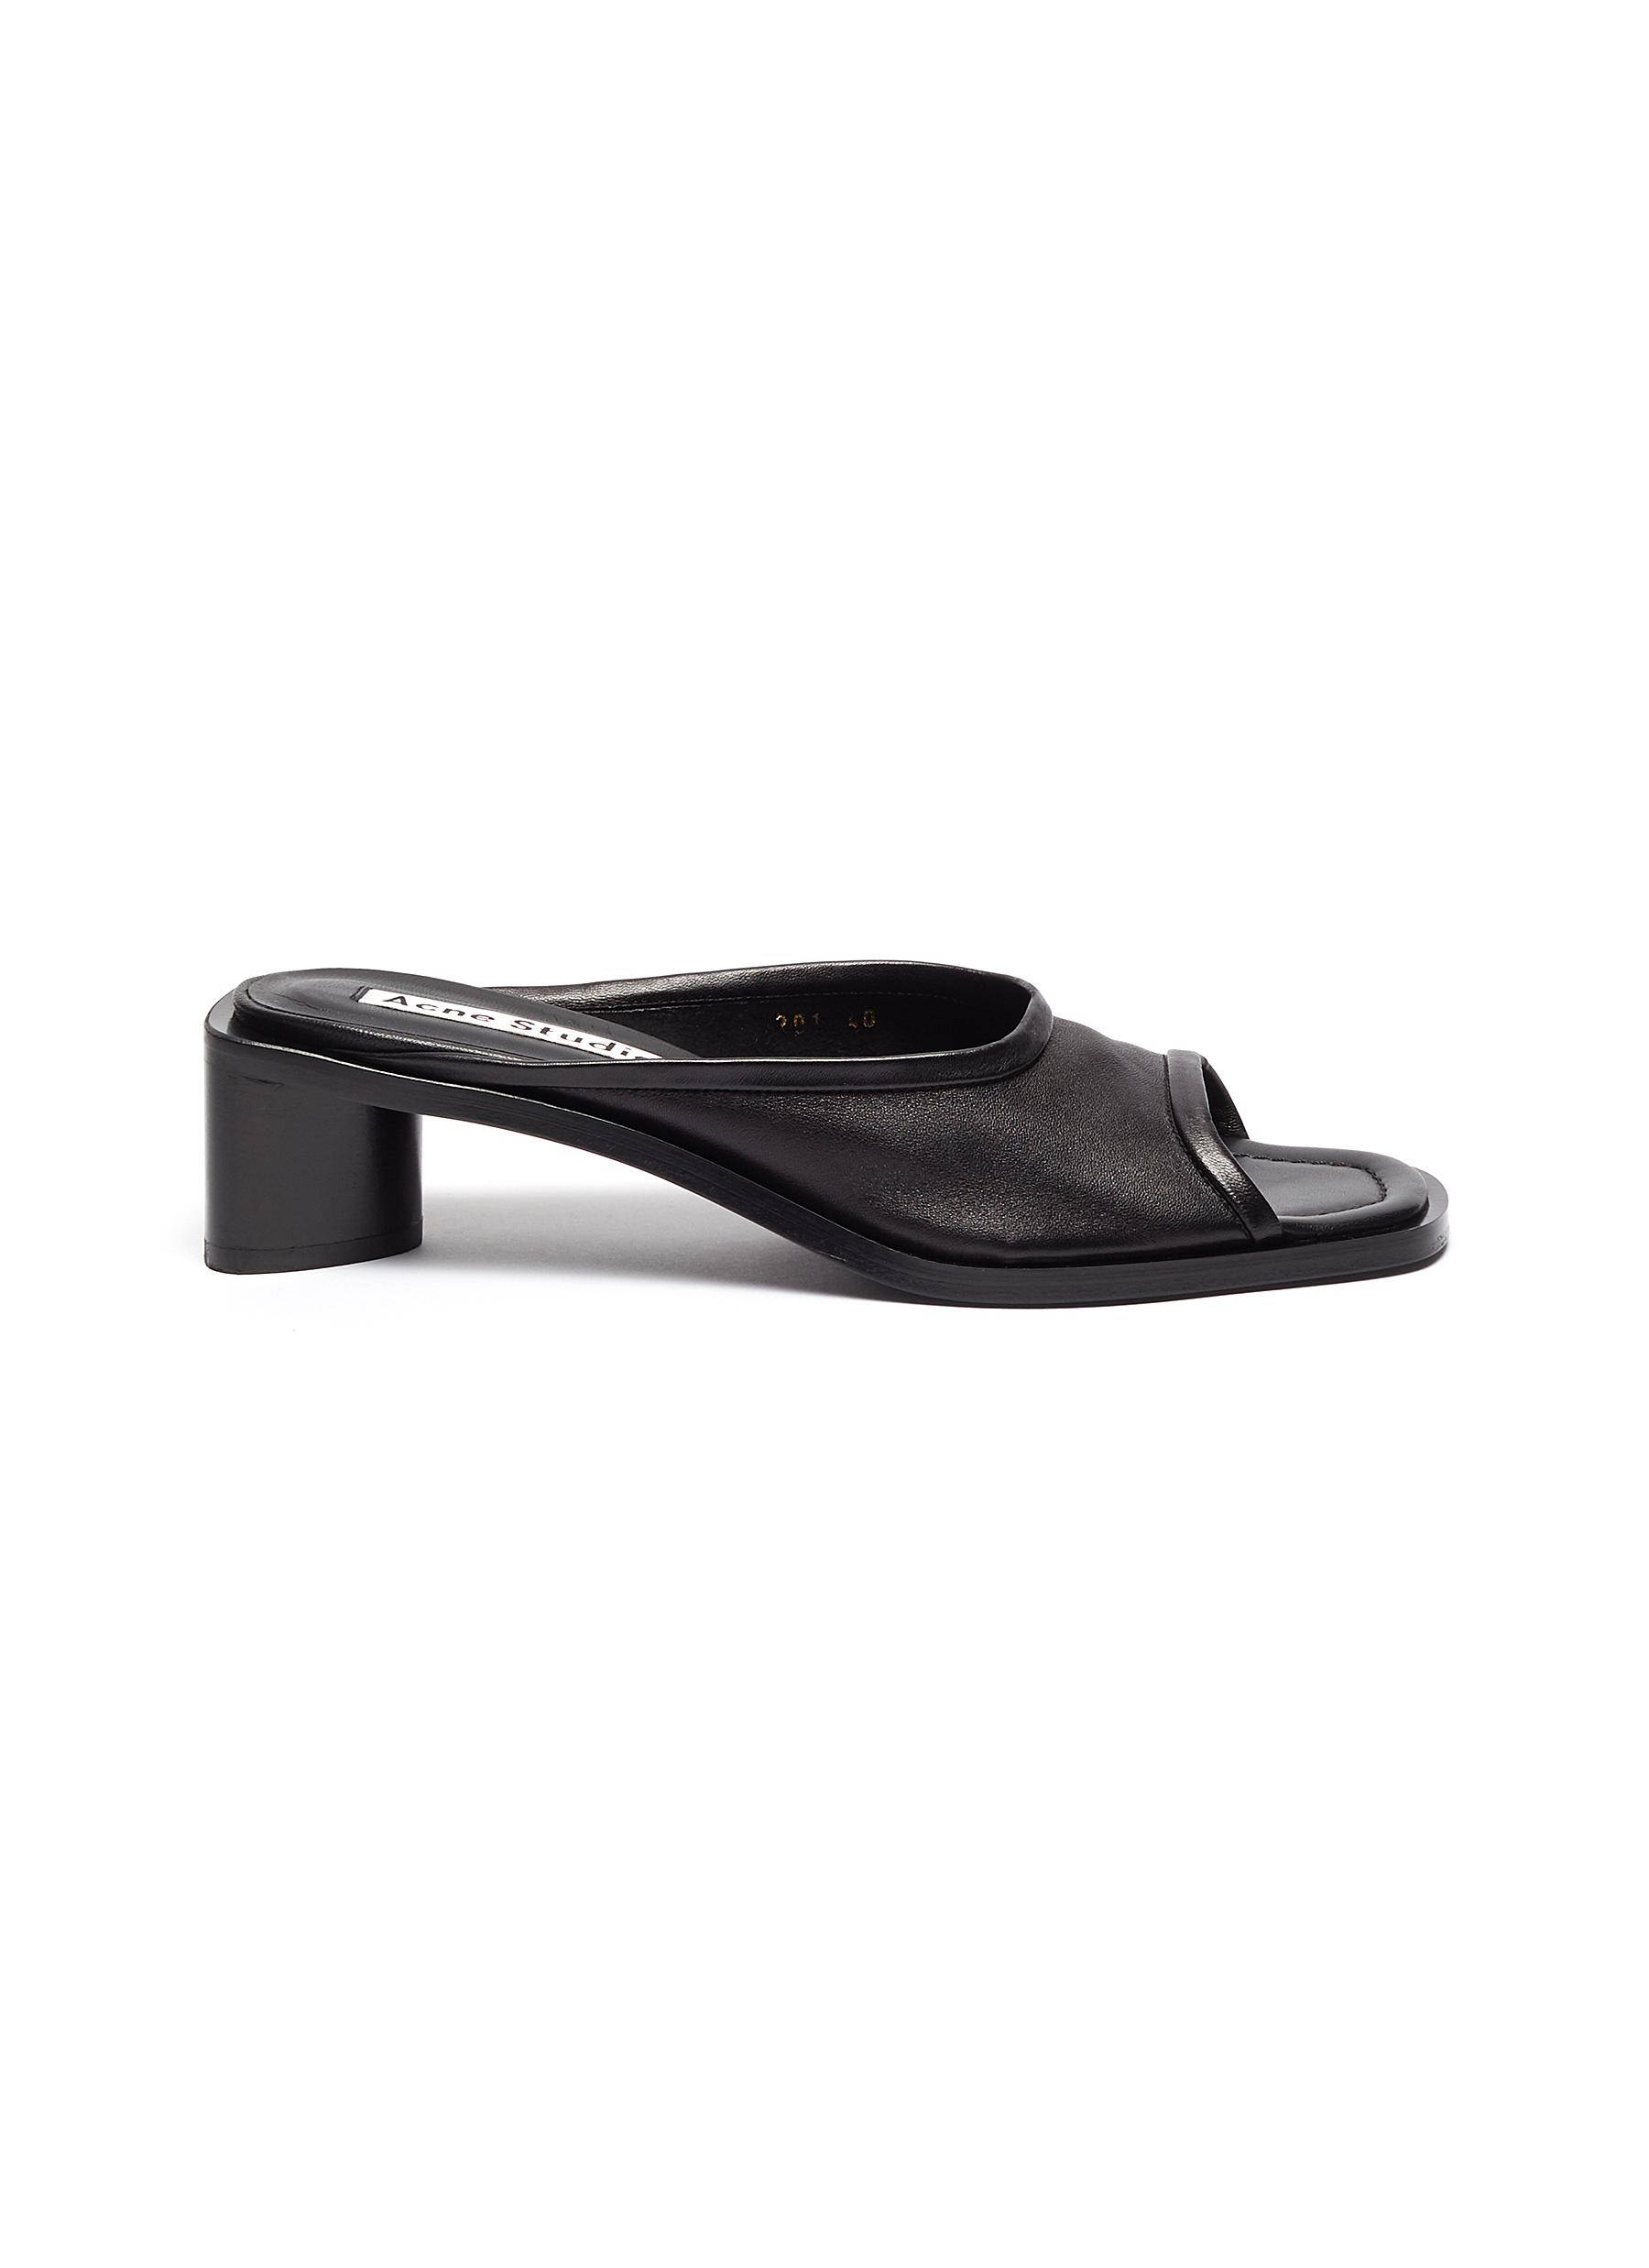 Acne Studios Mid Heels Open-toe leather mules